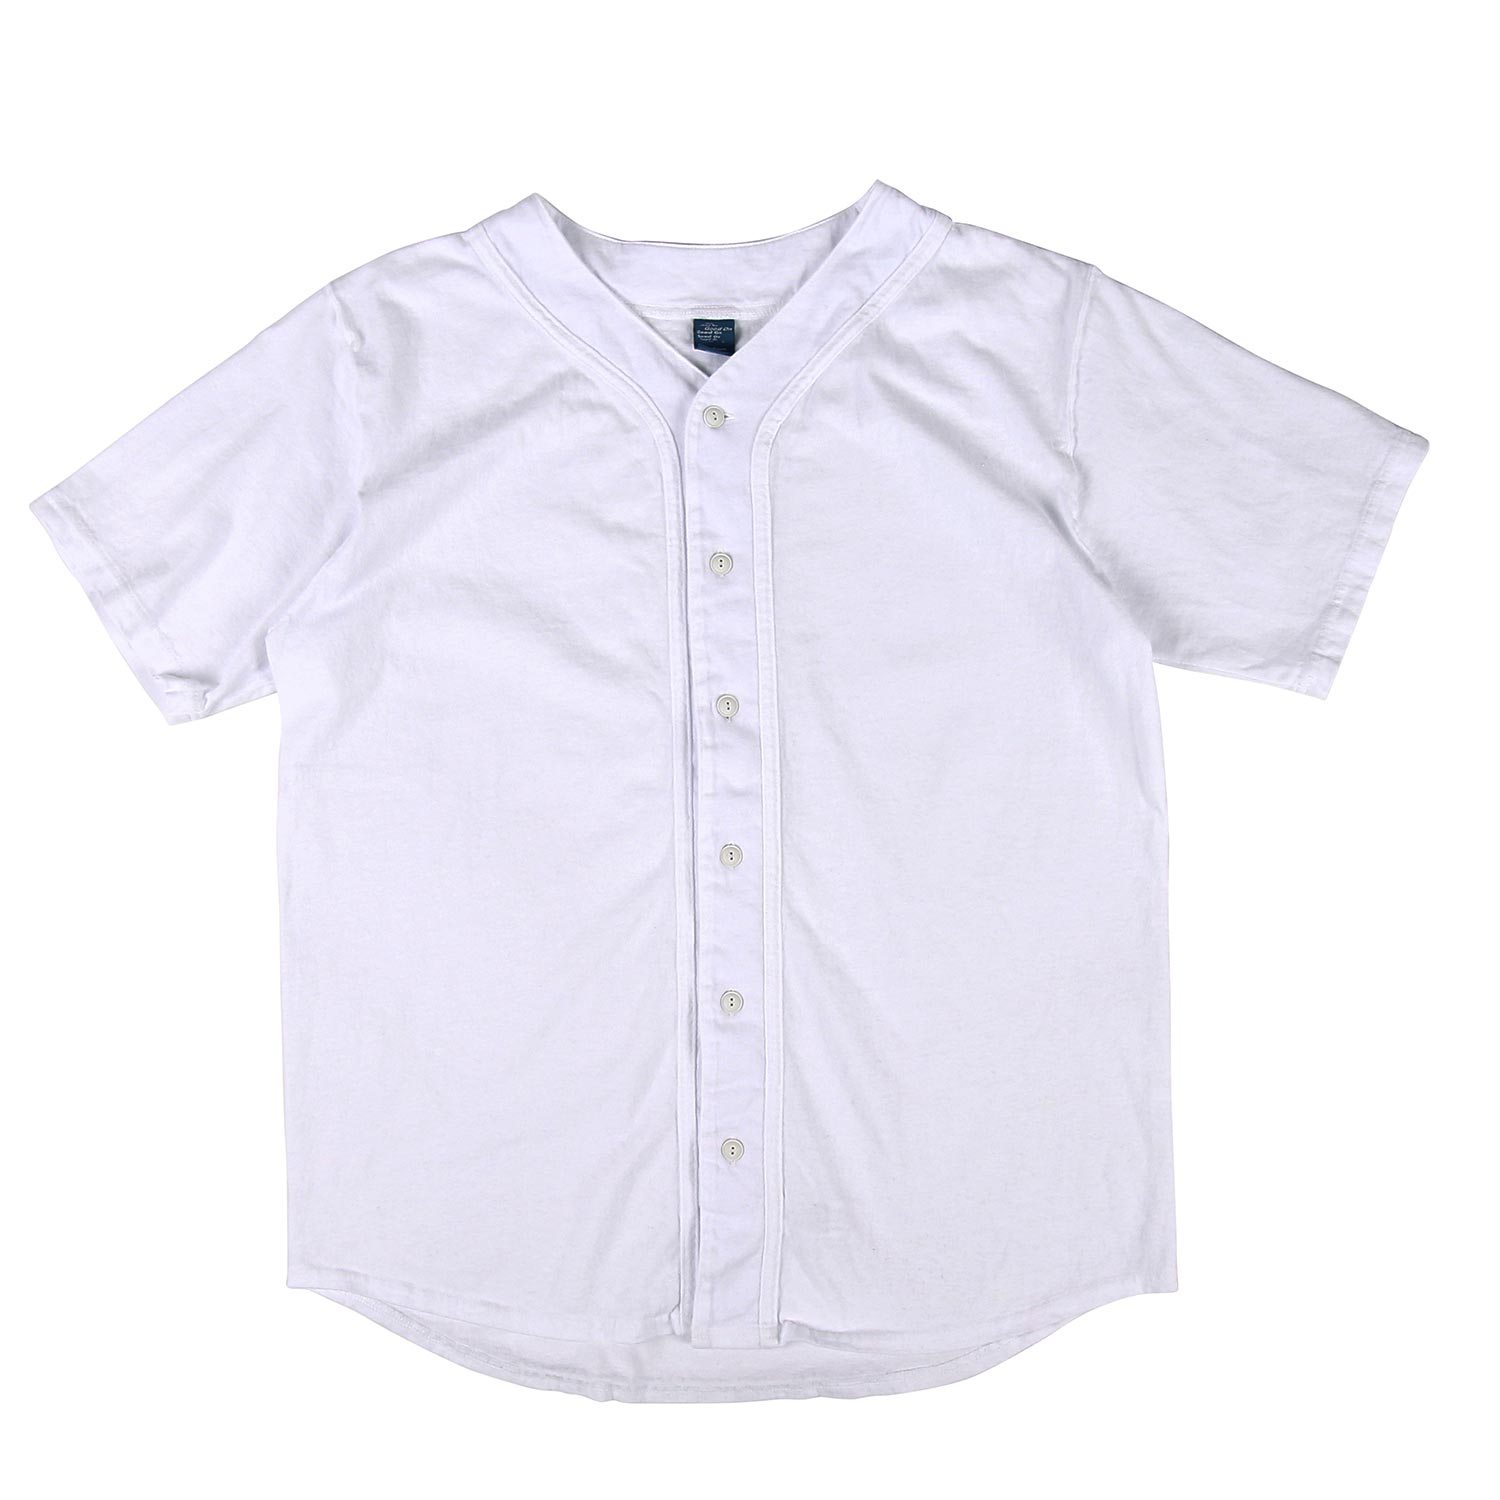 Baseball Shirts - White